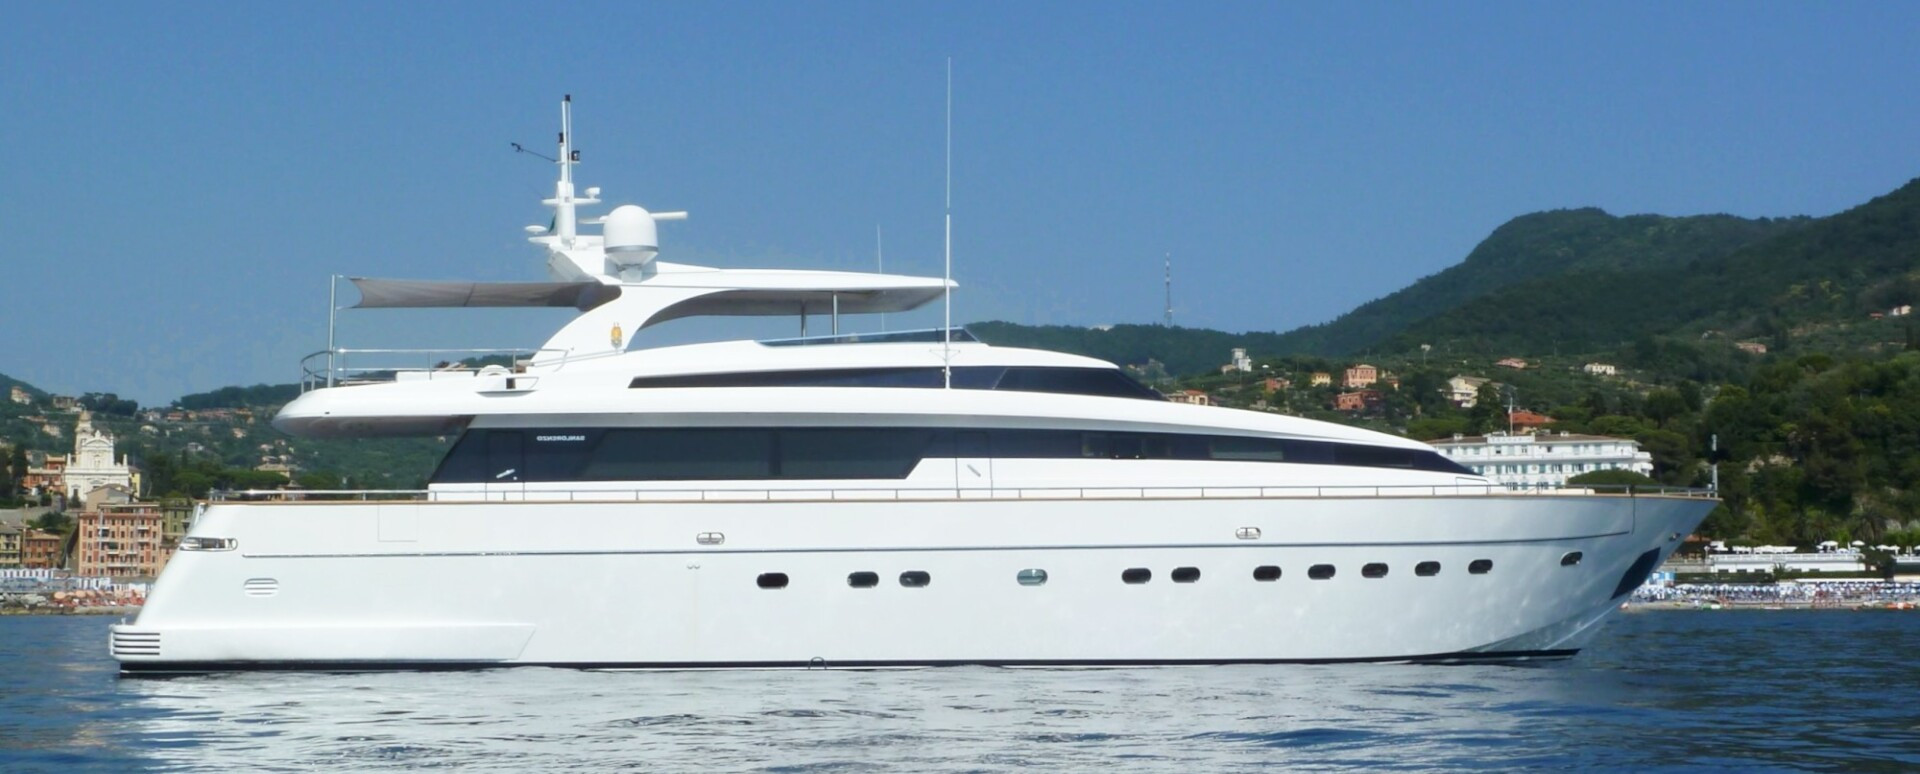 M/Y SUD  a further € 100,000 price drop, now asking € 2,850,000 ex VAT